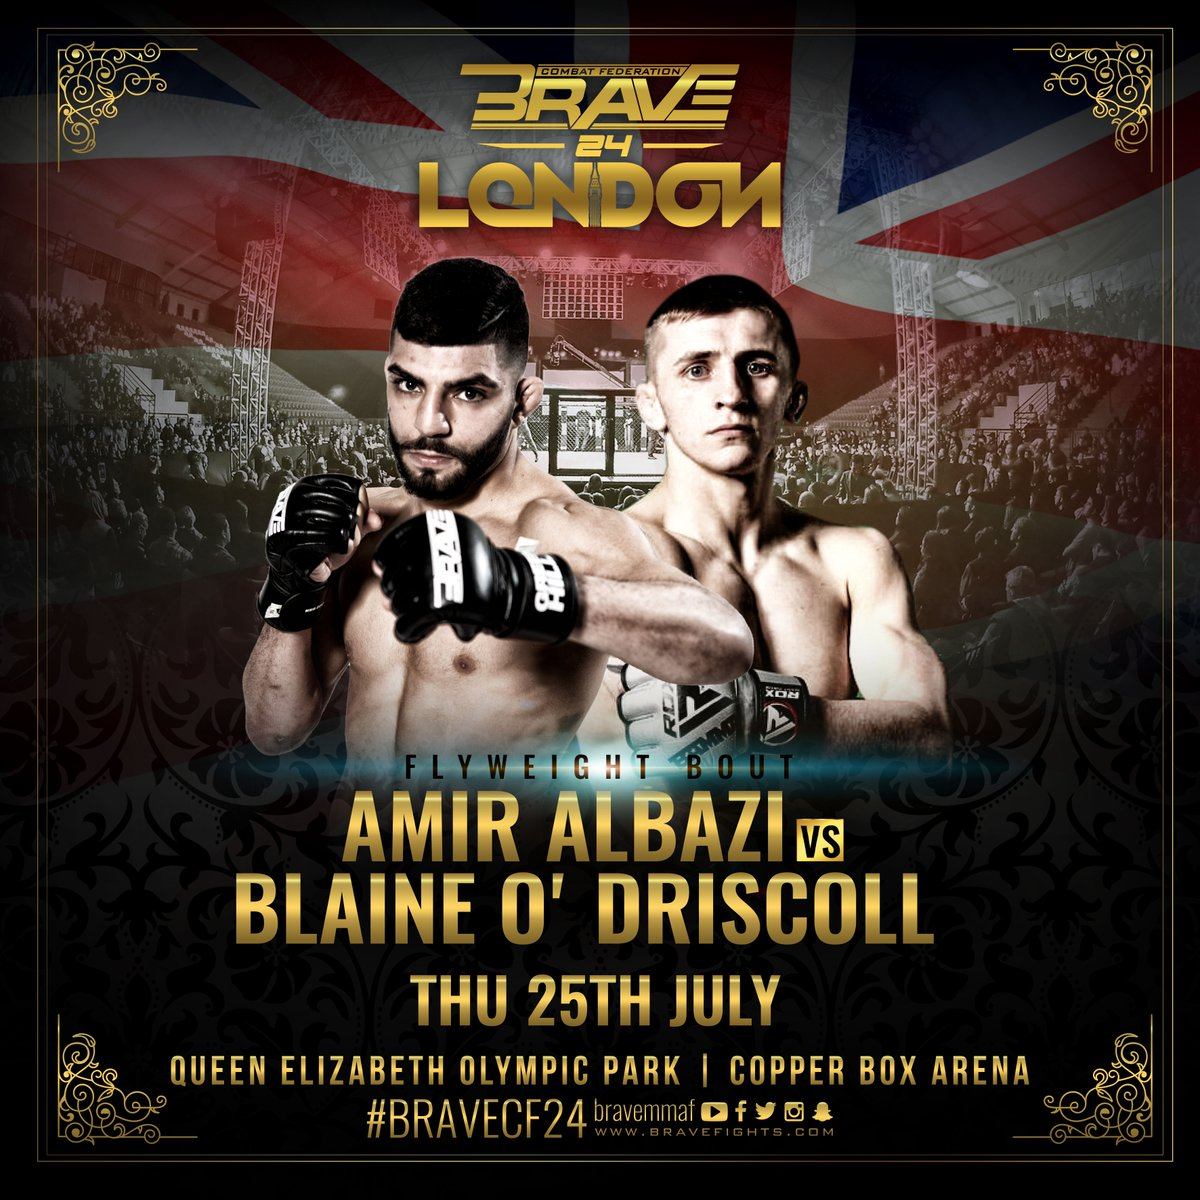 . @AmirAlbazi returns for his second appearance inside the BRAVE Arena to face Ireland's @BlaineSbg at BRAVE 24: London. #BRAVECF24 #Prince #MMA #London #Ireland